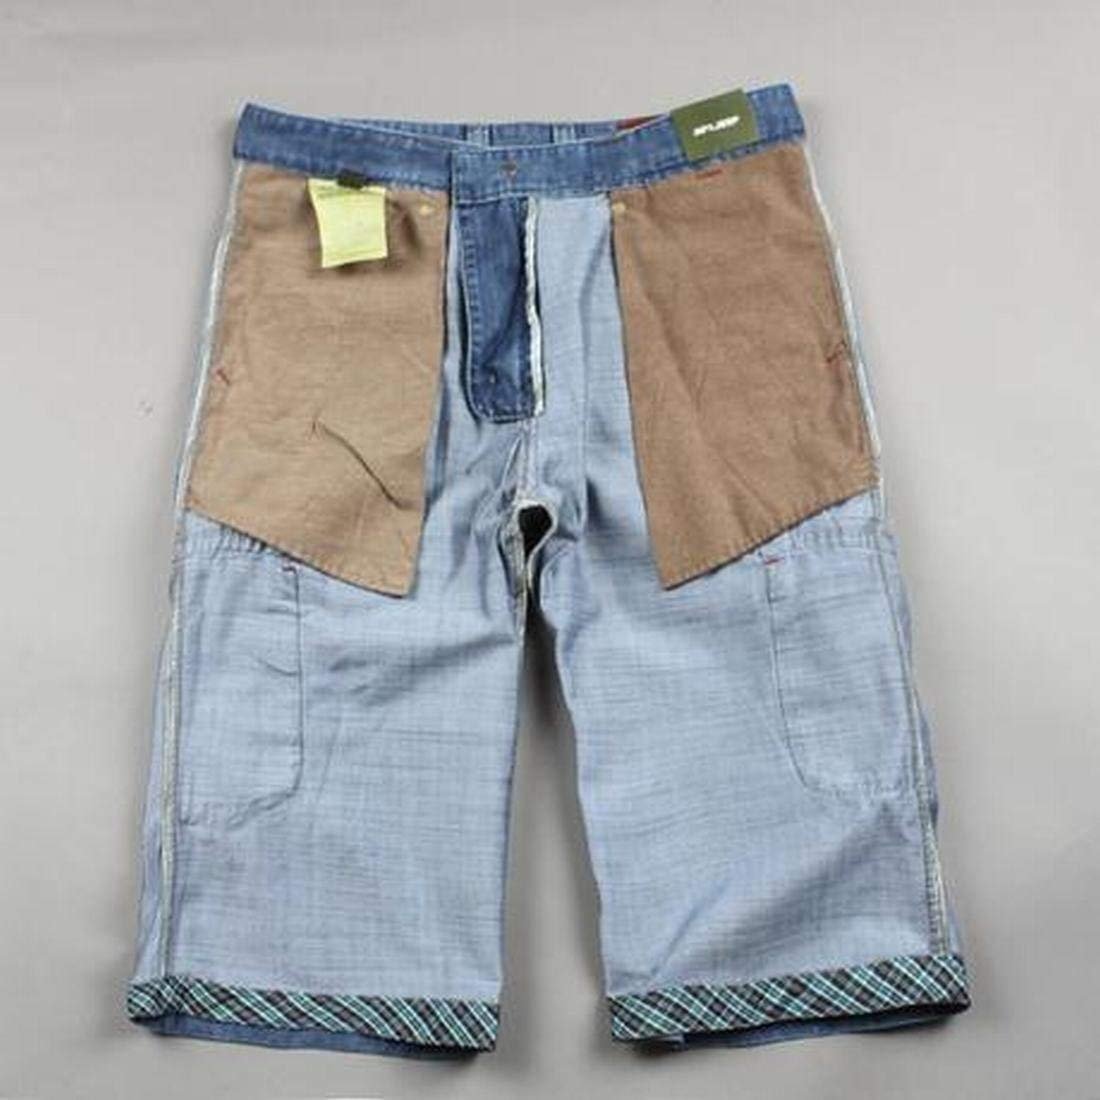 SELX Men Plus Size Outdoor Multi-Pockets Relaxed Fit Denim Shorts Jeans